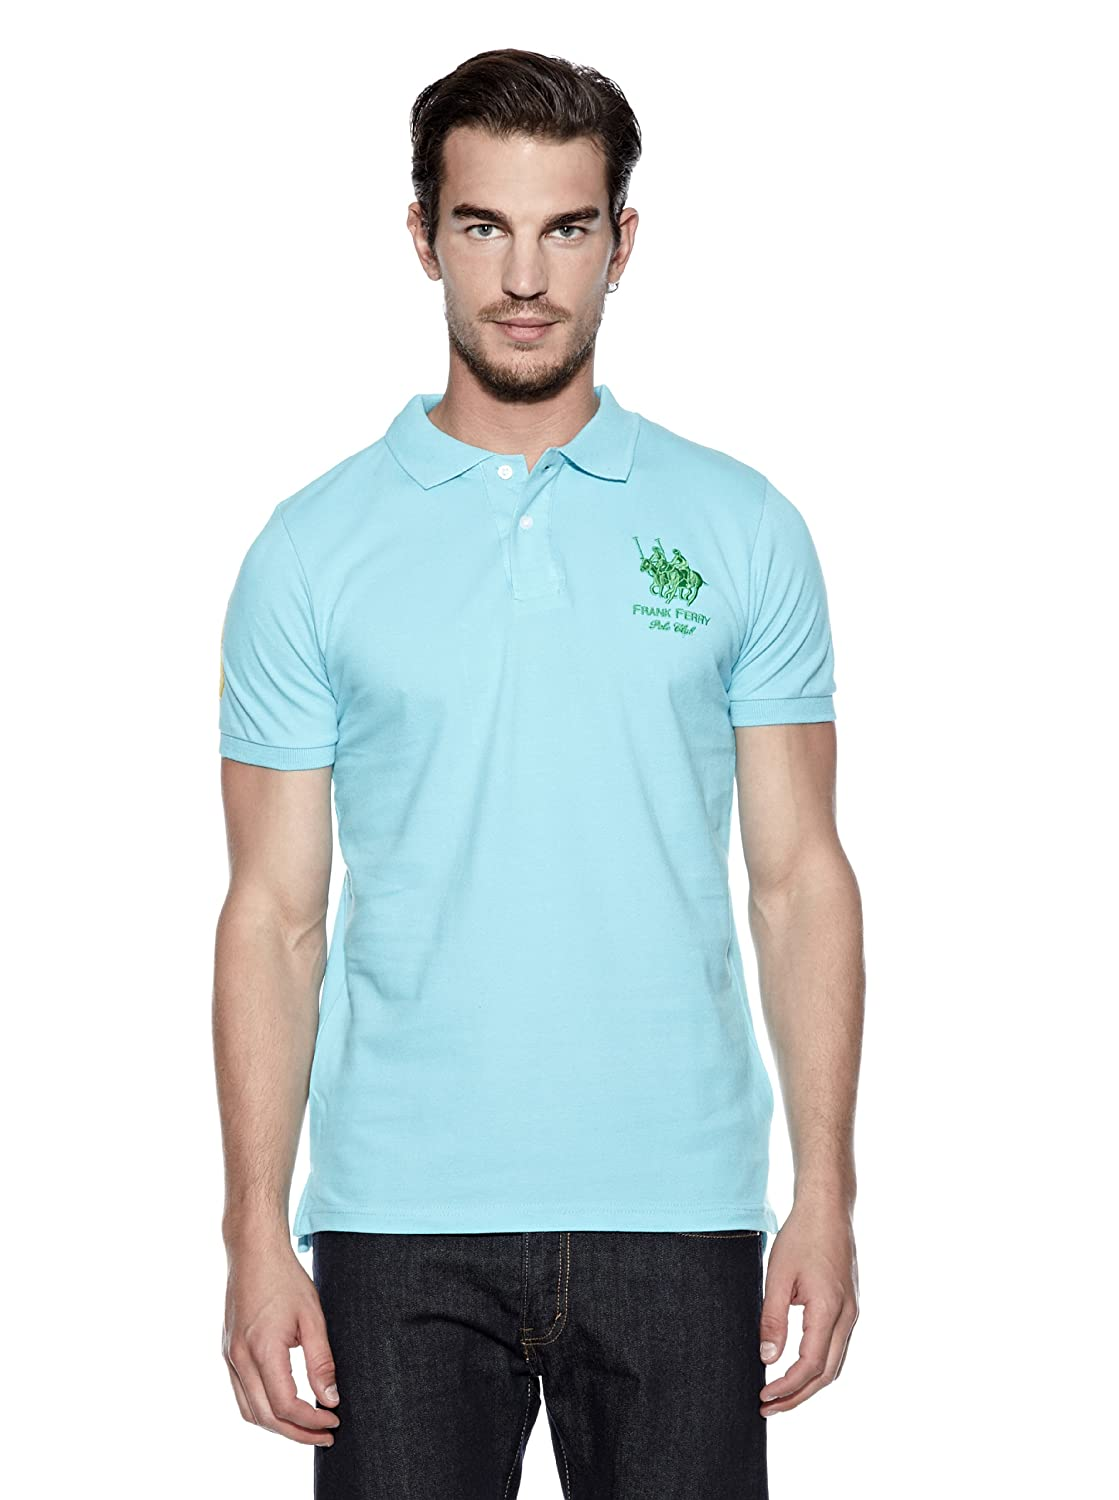 FRANK FERRY Polo Mark Turquesa S: Amazon.es: Ropa y accesorios